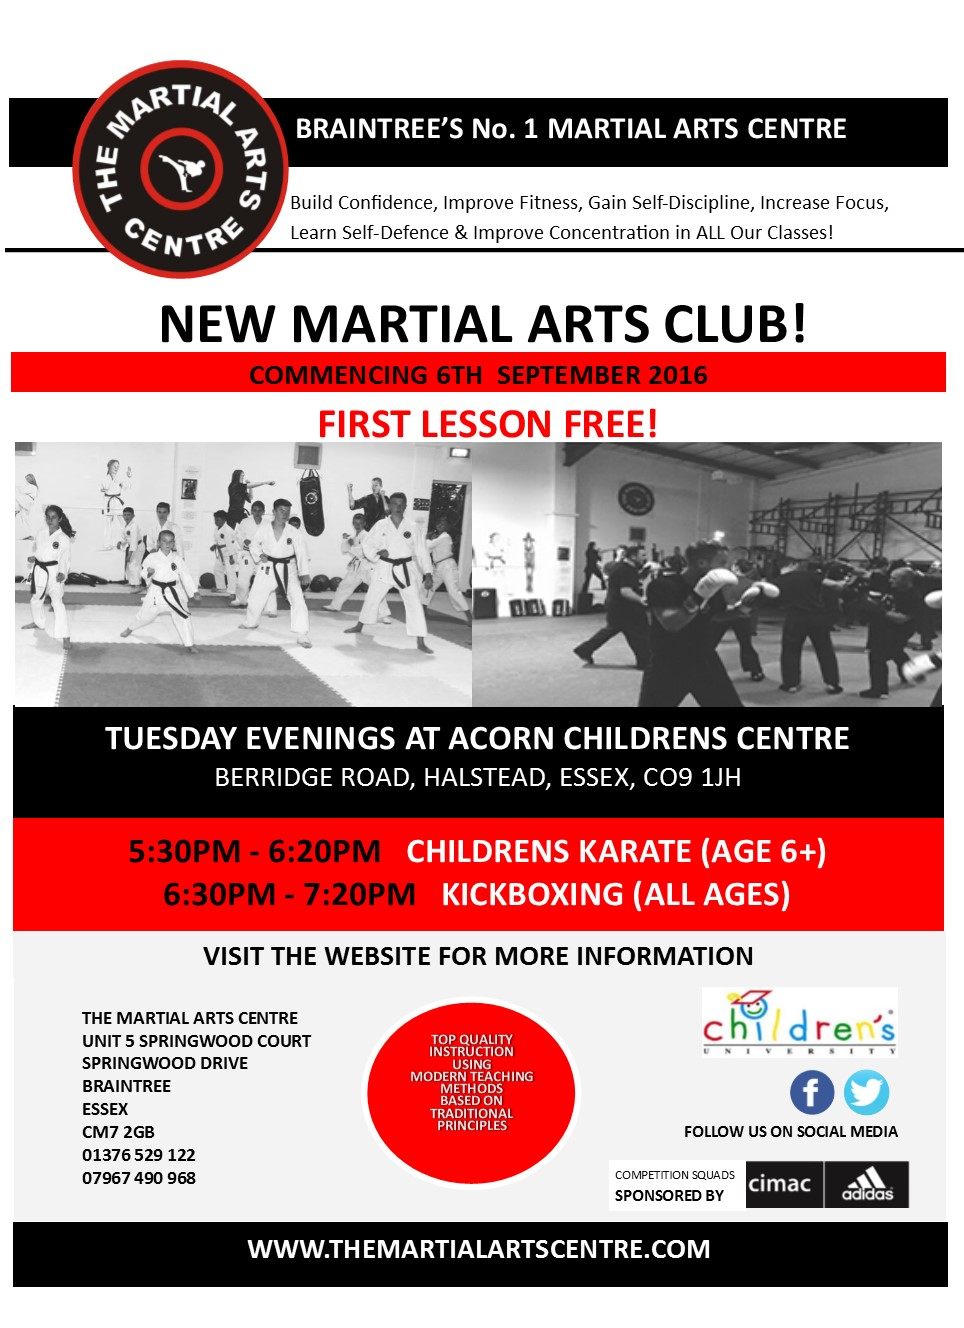 Childrens Karate / All ages Kickboxing